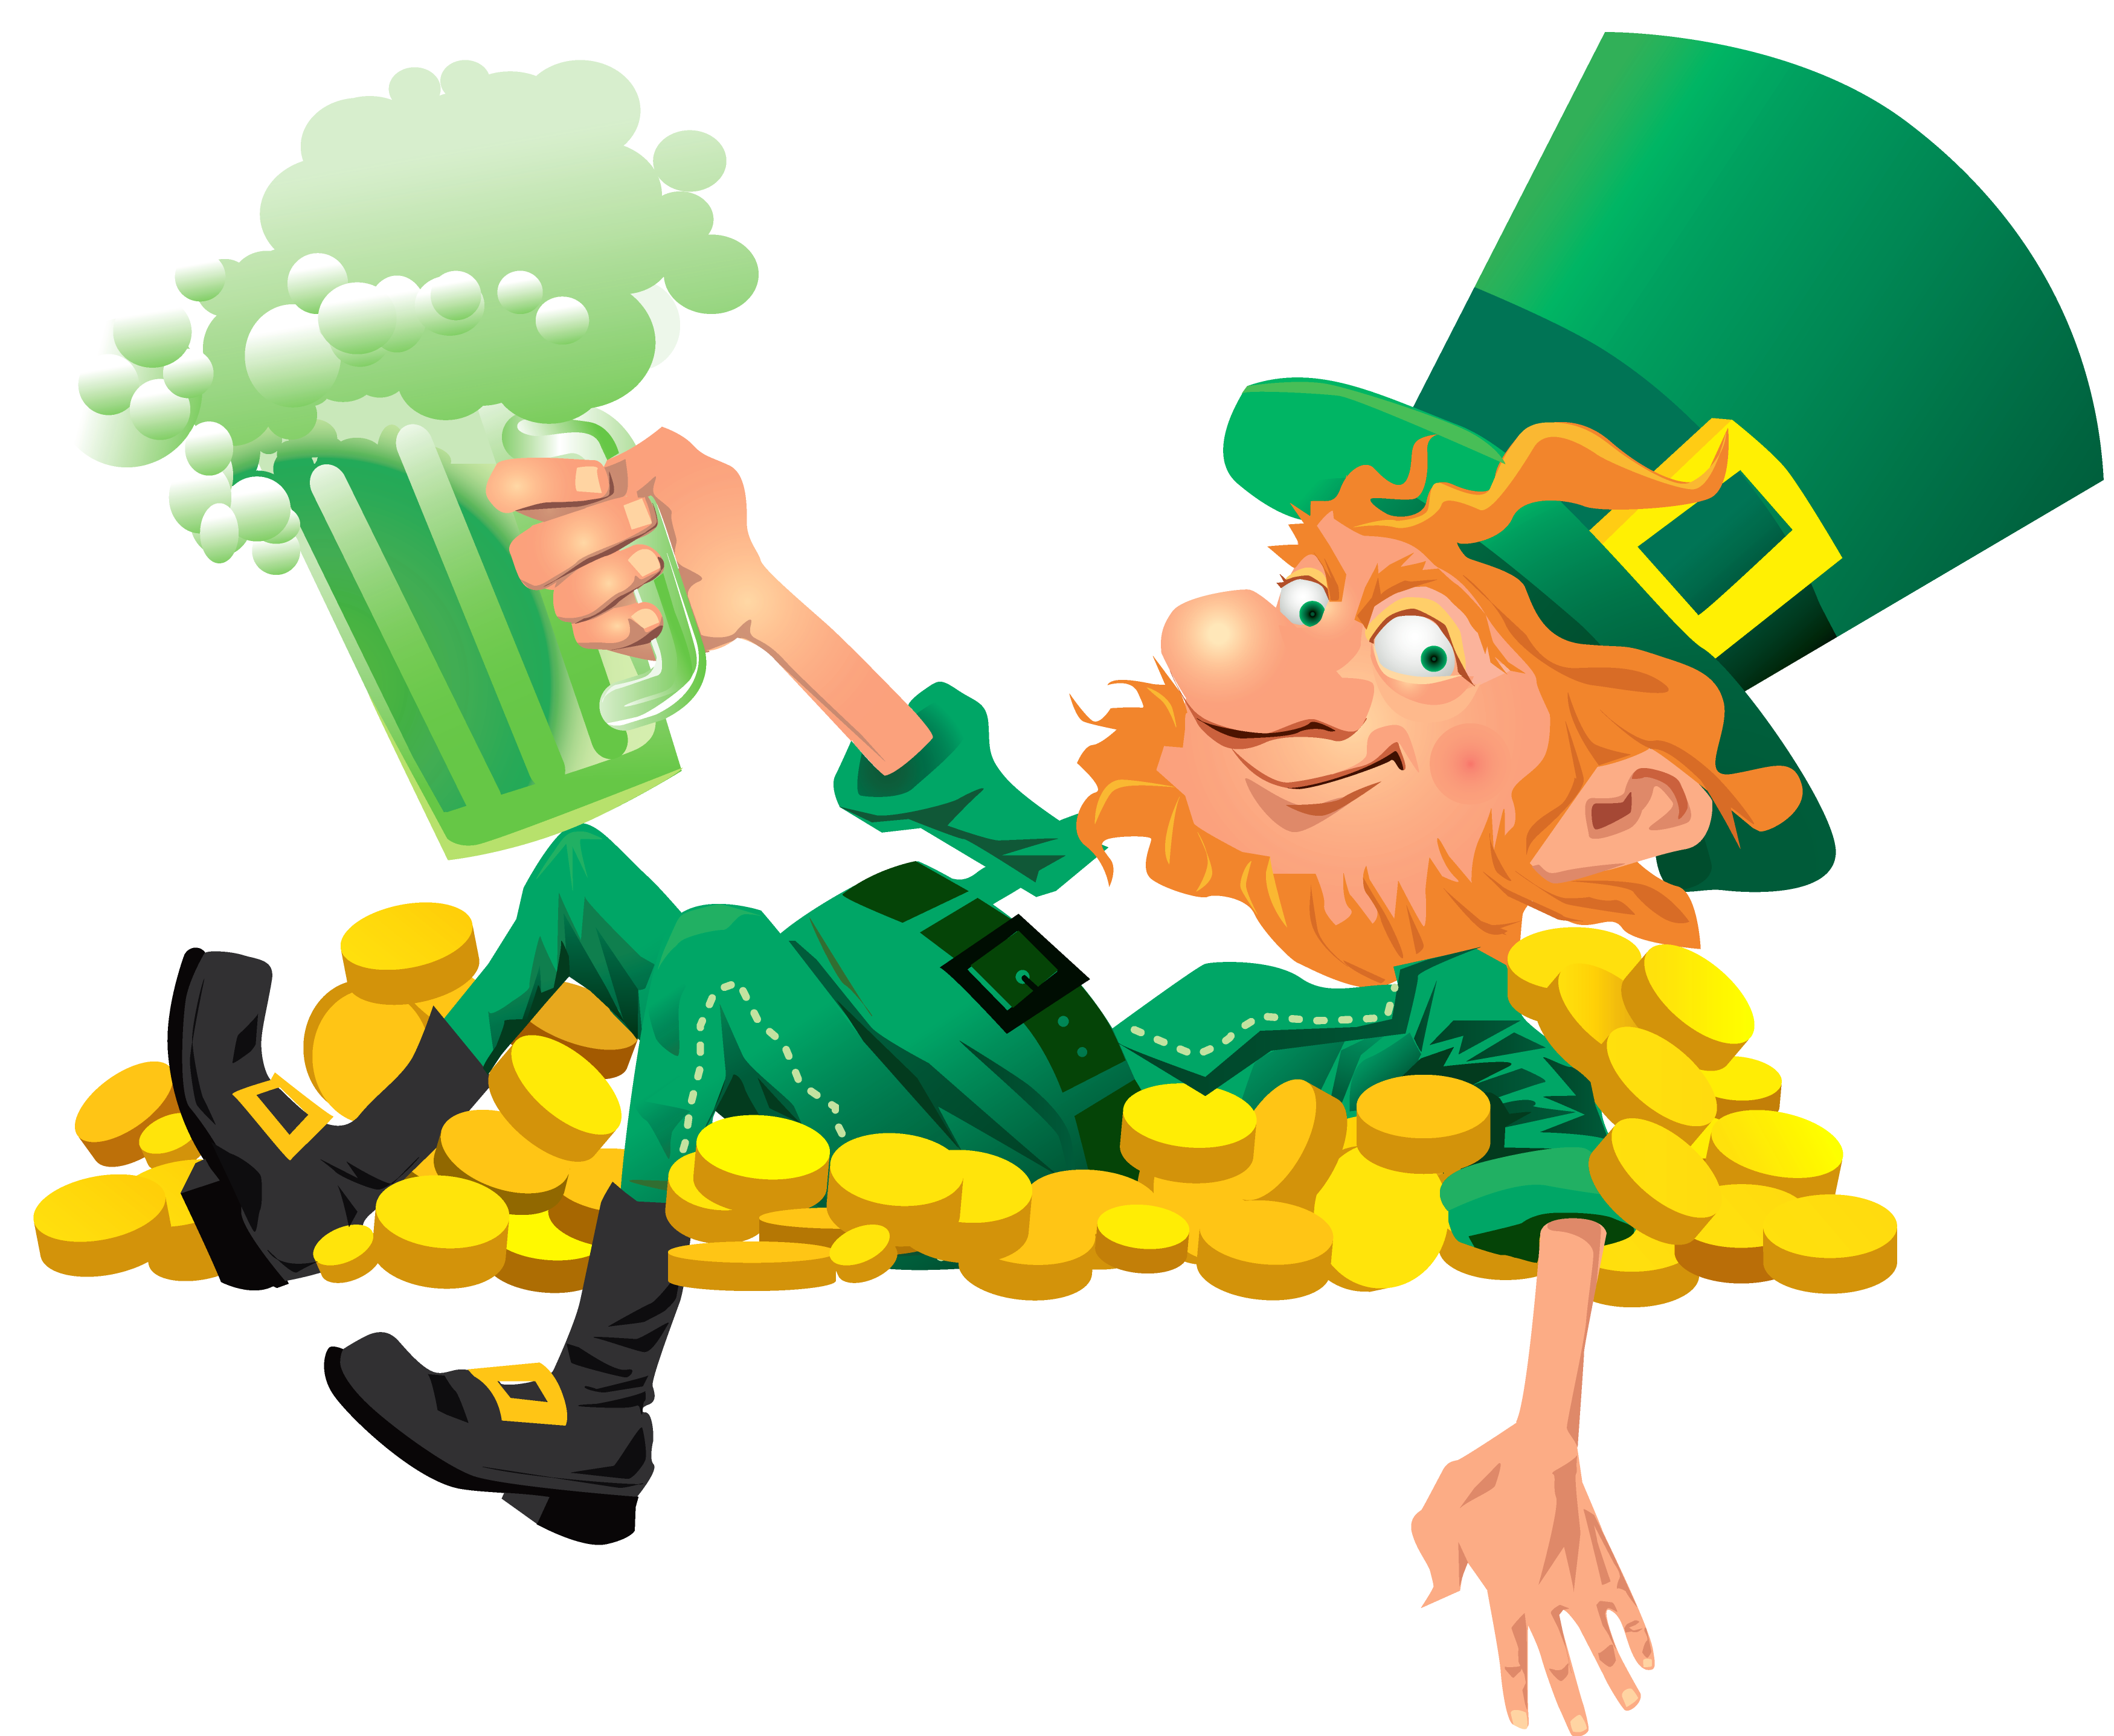 leprechaun beer clip art images free irish pub ideas pinterest rh pinterest com au dancing leprechaun clipart free dancing leprechaun clipart free